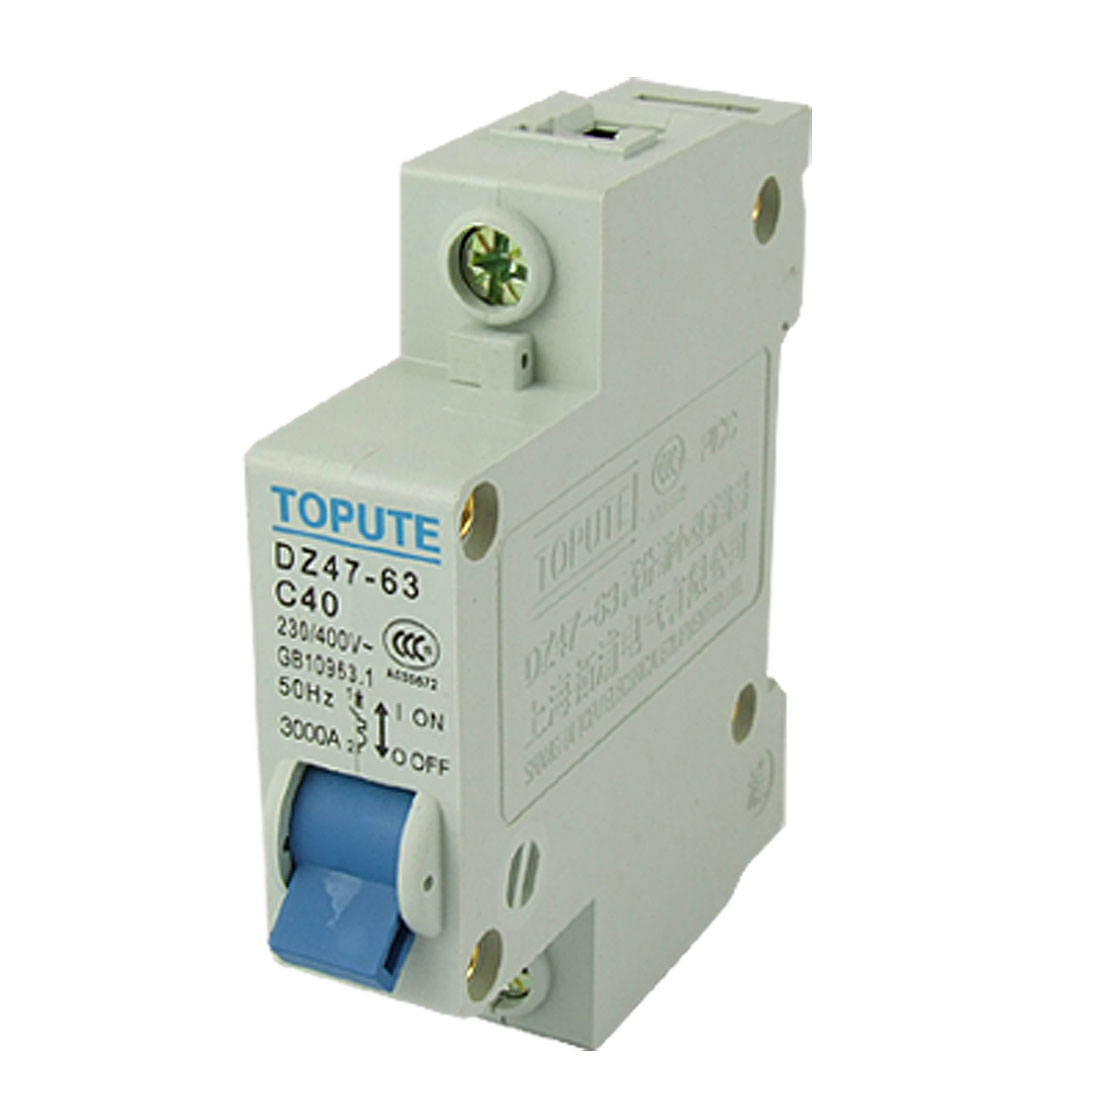 DZ47-63 C40 Single Pole Miniature Circuit Breaker Auxiliary Switch